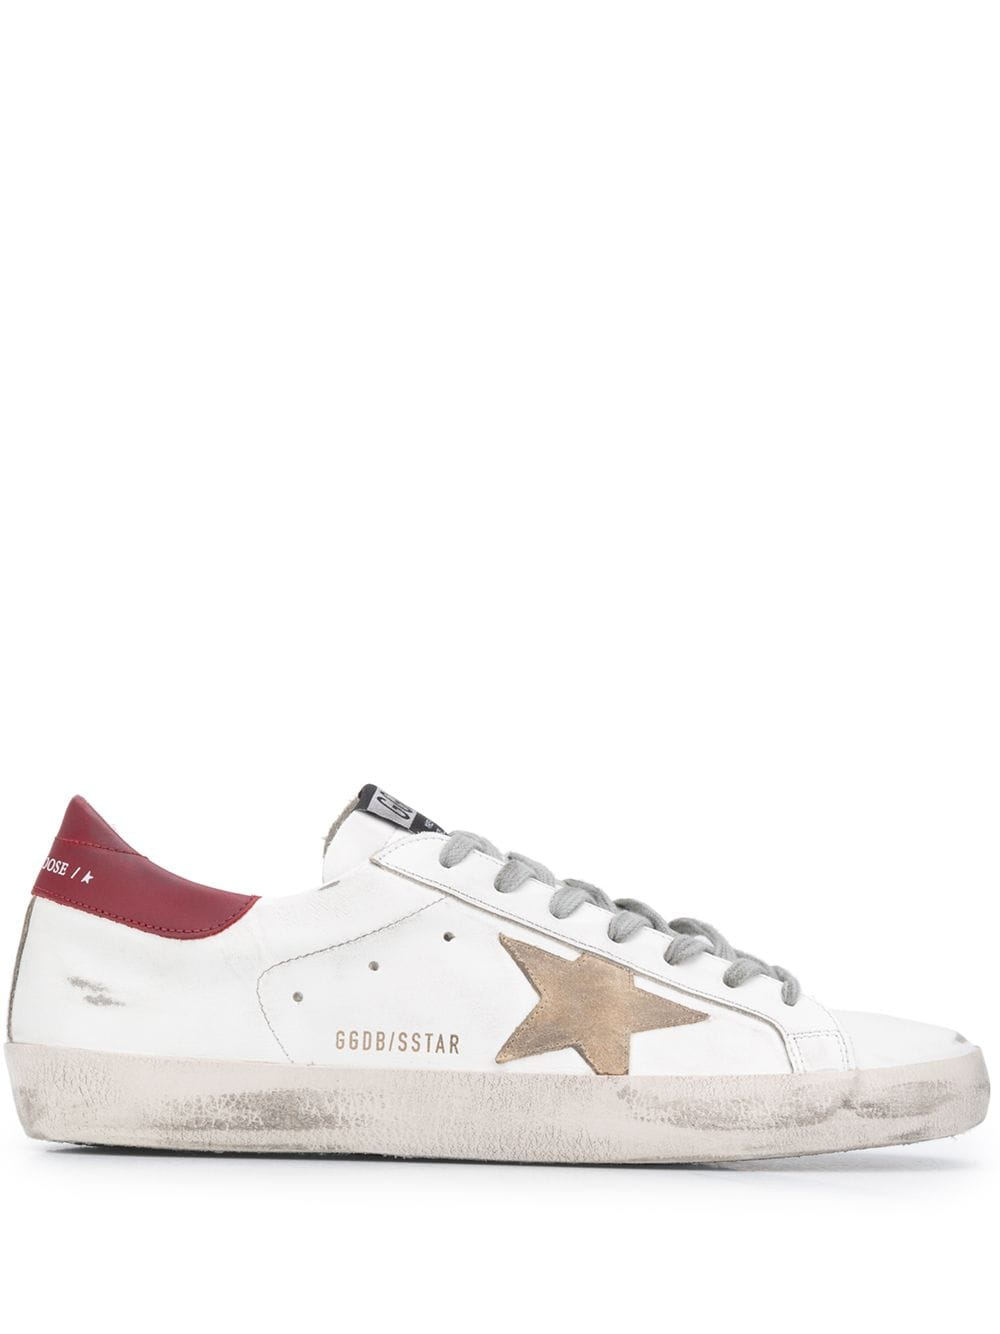 White and Red Super Star Man Sneakers